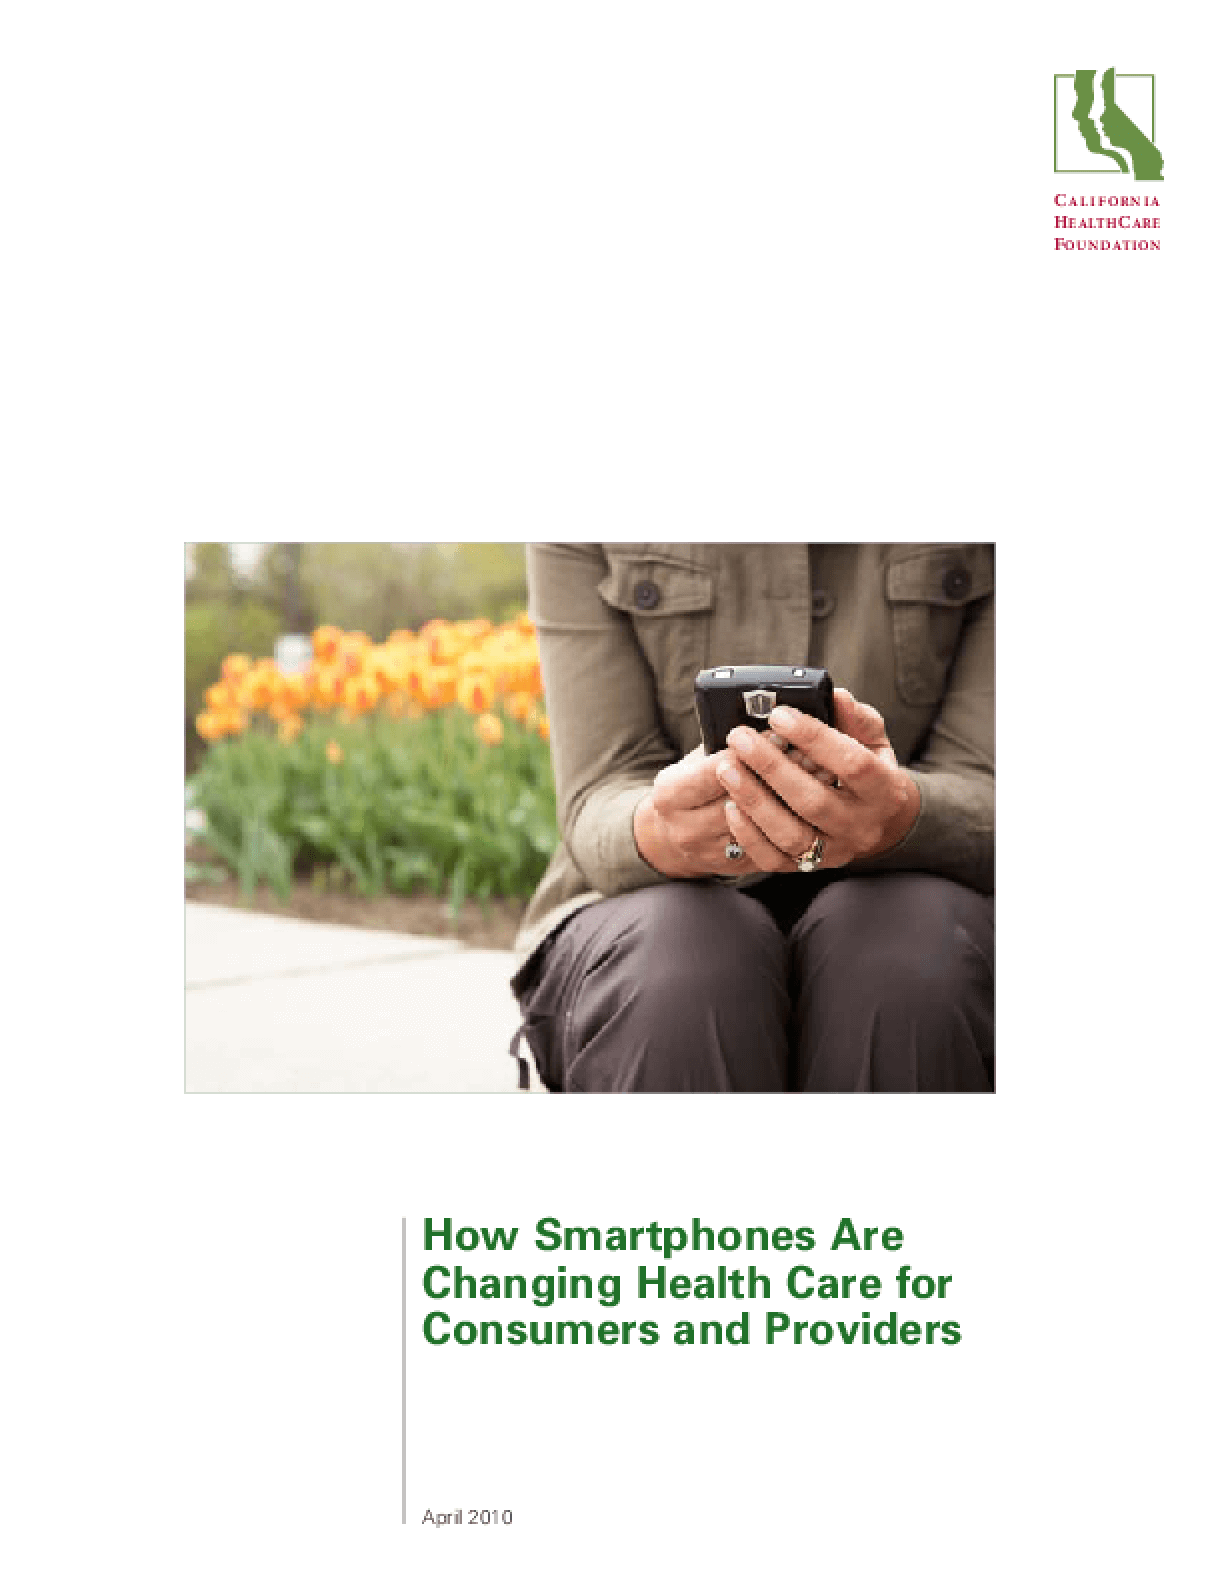 How Smartphones Are Changing Health Care for Consumers and Providers